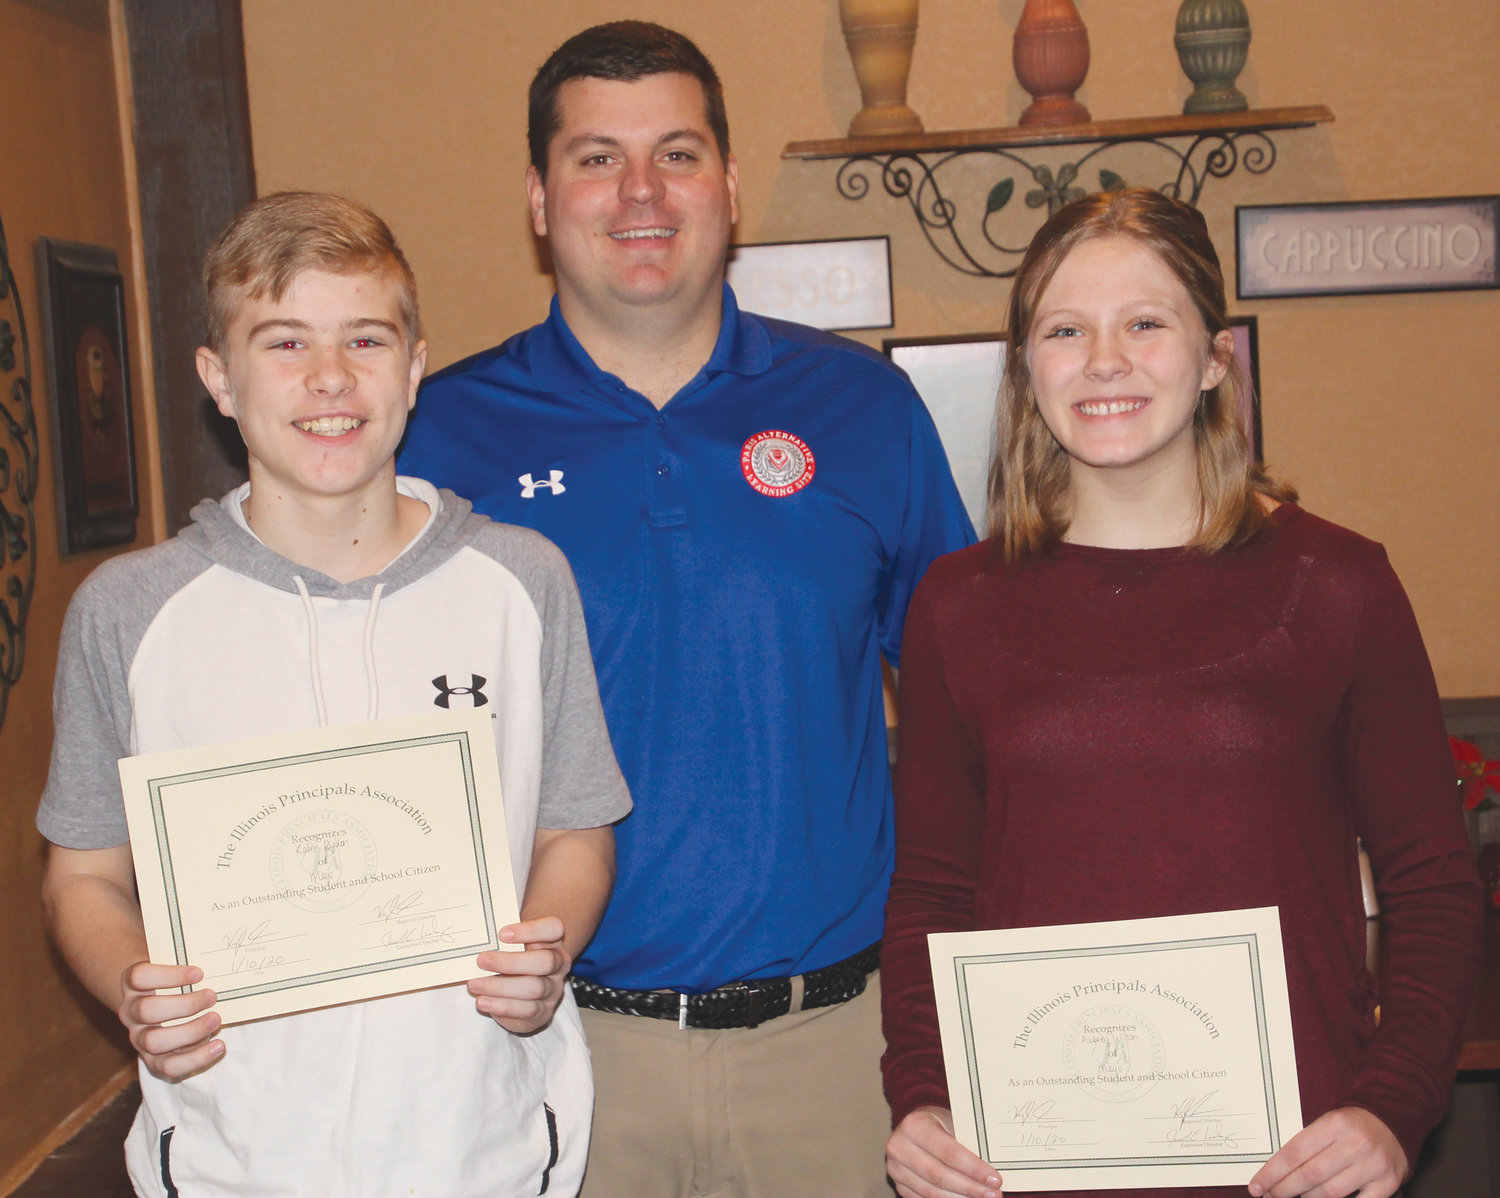 Two Mayo Middle School eighth graders were honored during the annual Edgar County Principal's Breakfast Friday, Jan. 10, at Tuscany Restaurant. Pictured, from left, are Kalvin Rigdon, Mayo principal Kyle Shay and Aubrey Wilson.